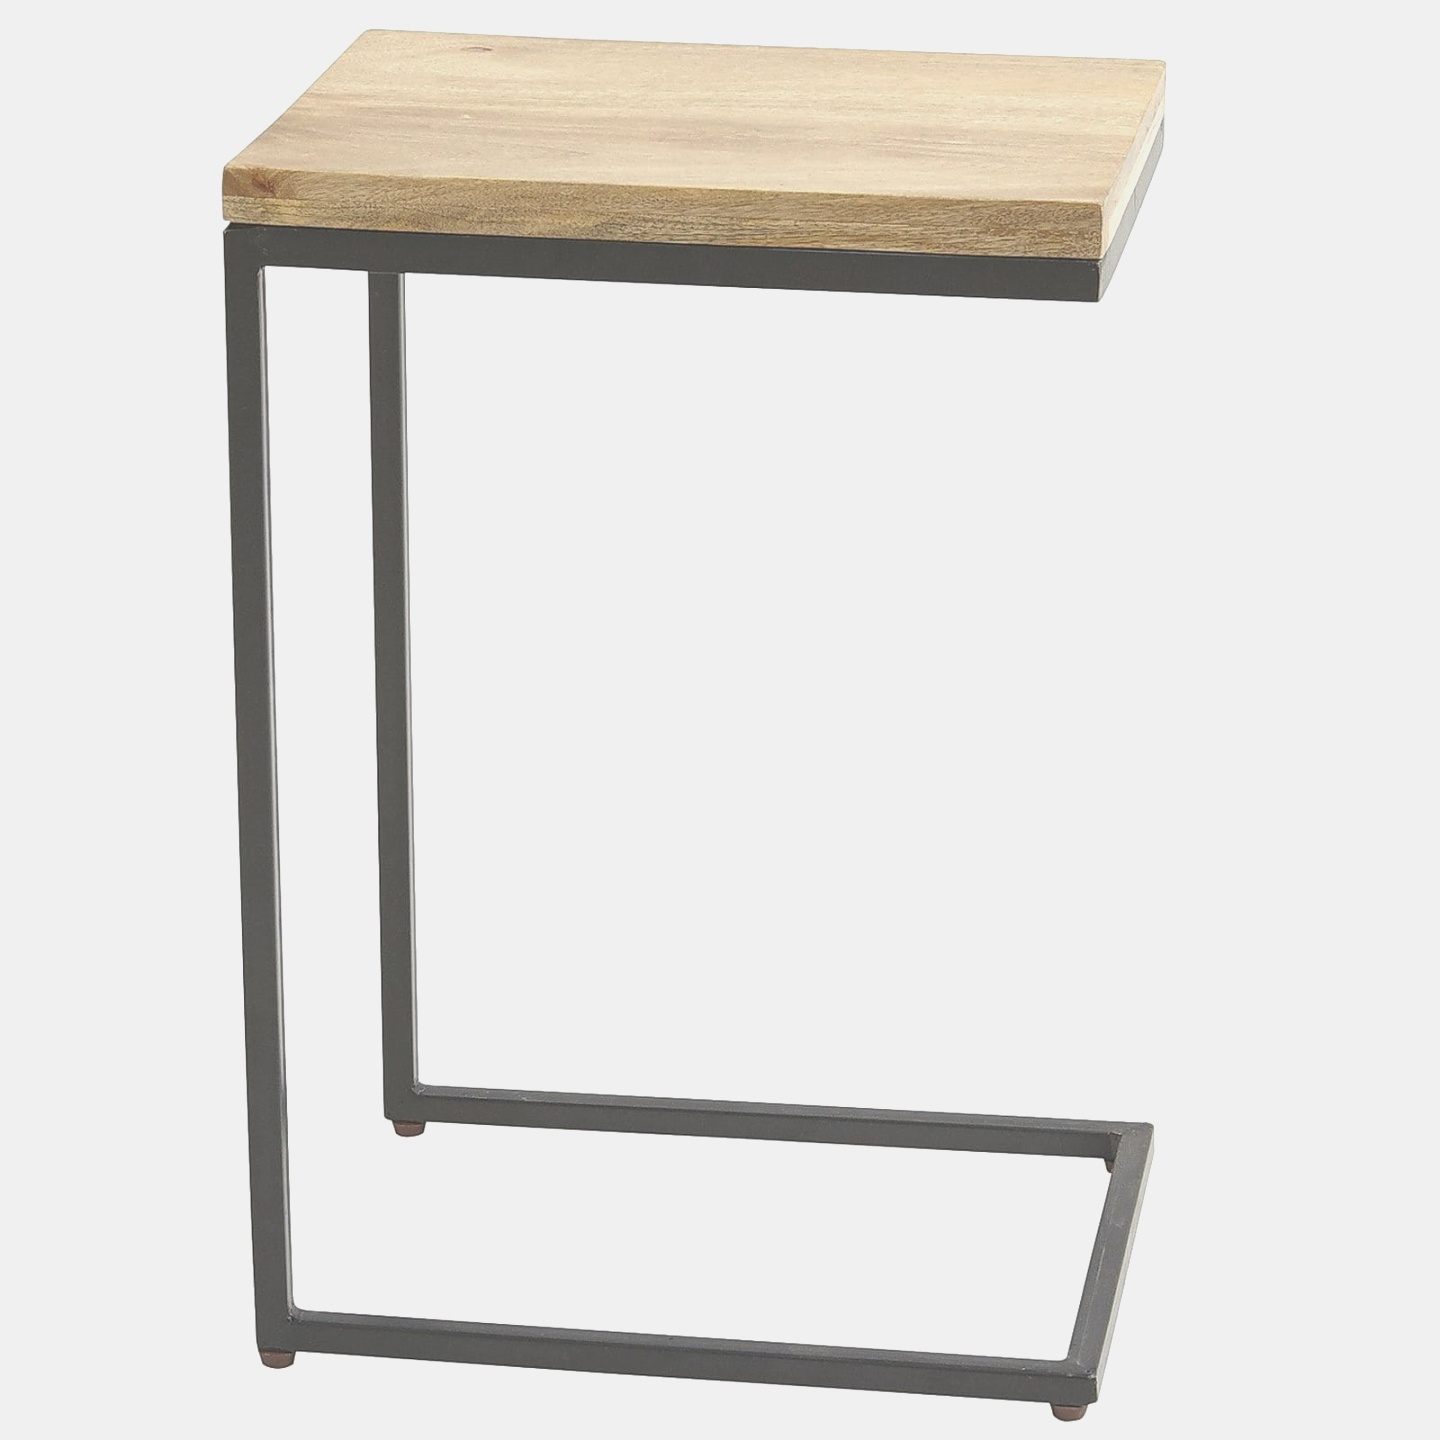 c side table | Takat Natural Mango Wood C-Table | Pier 1 Imports | c side table